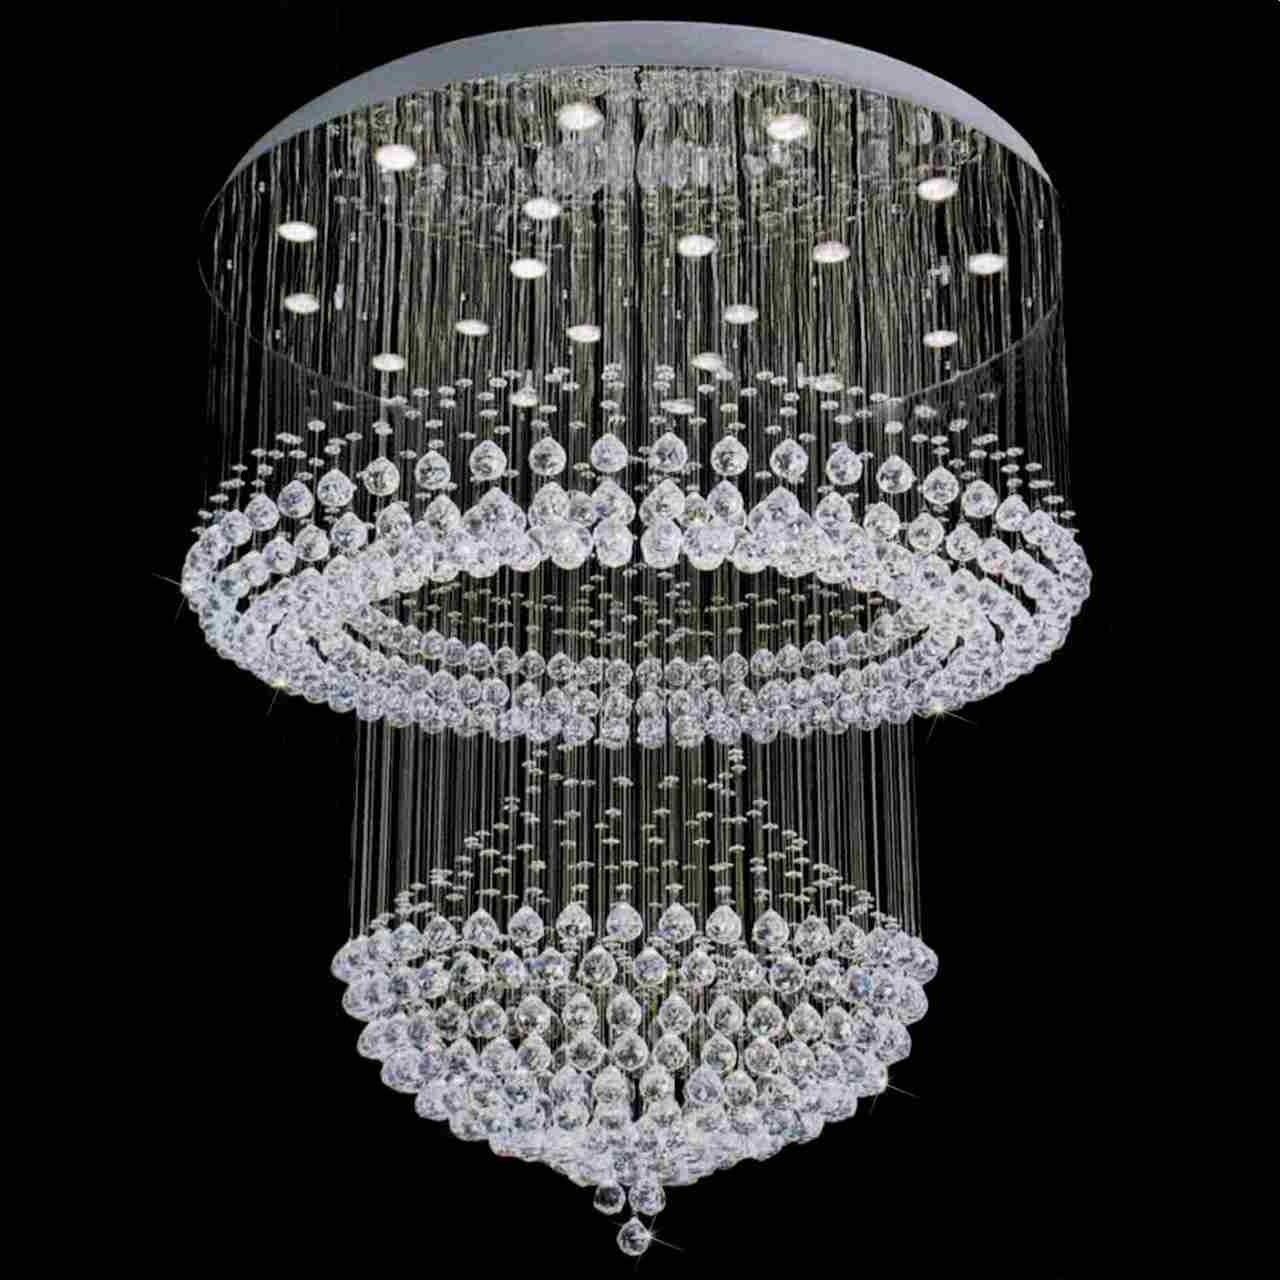 and sphere crystal astounding iron black candle glass chandelier orb crystals style lamp foucault round replica ideas with astonishing chandeliers